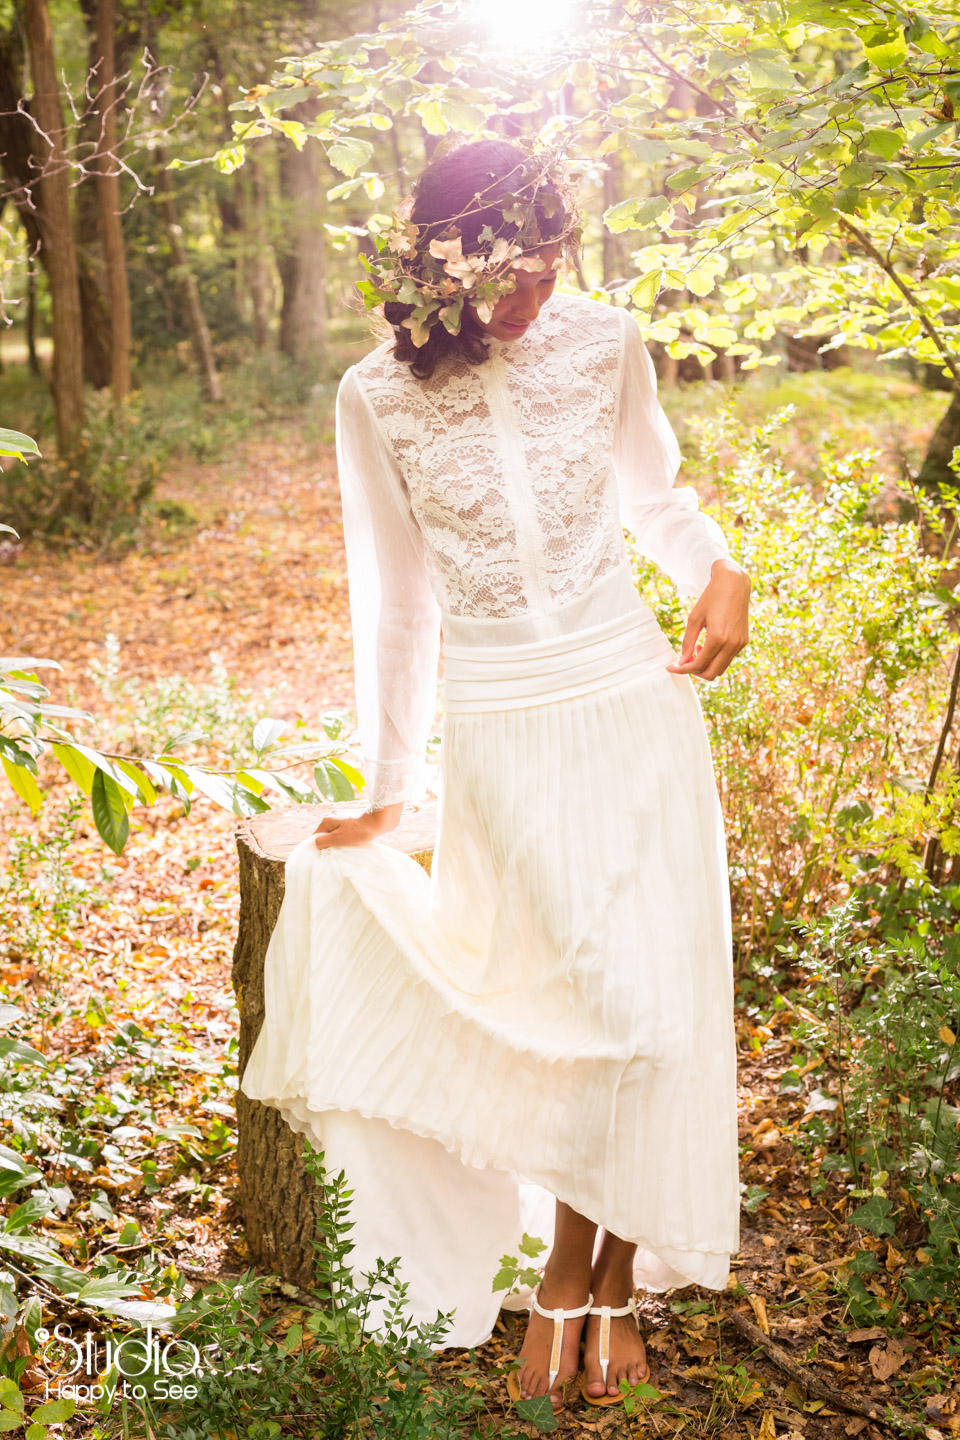 Shooting inspiration Robe de Mariée - Studio Happy to See Photographe ...